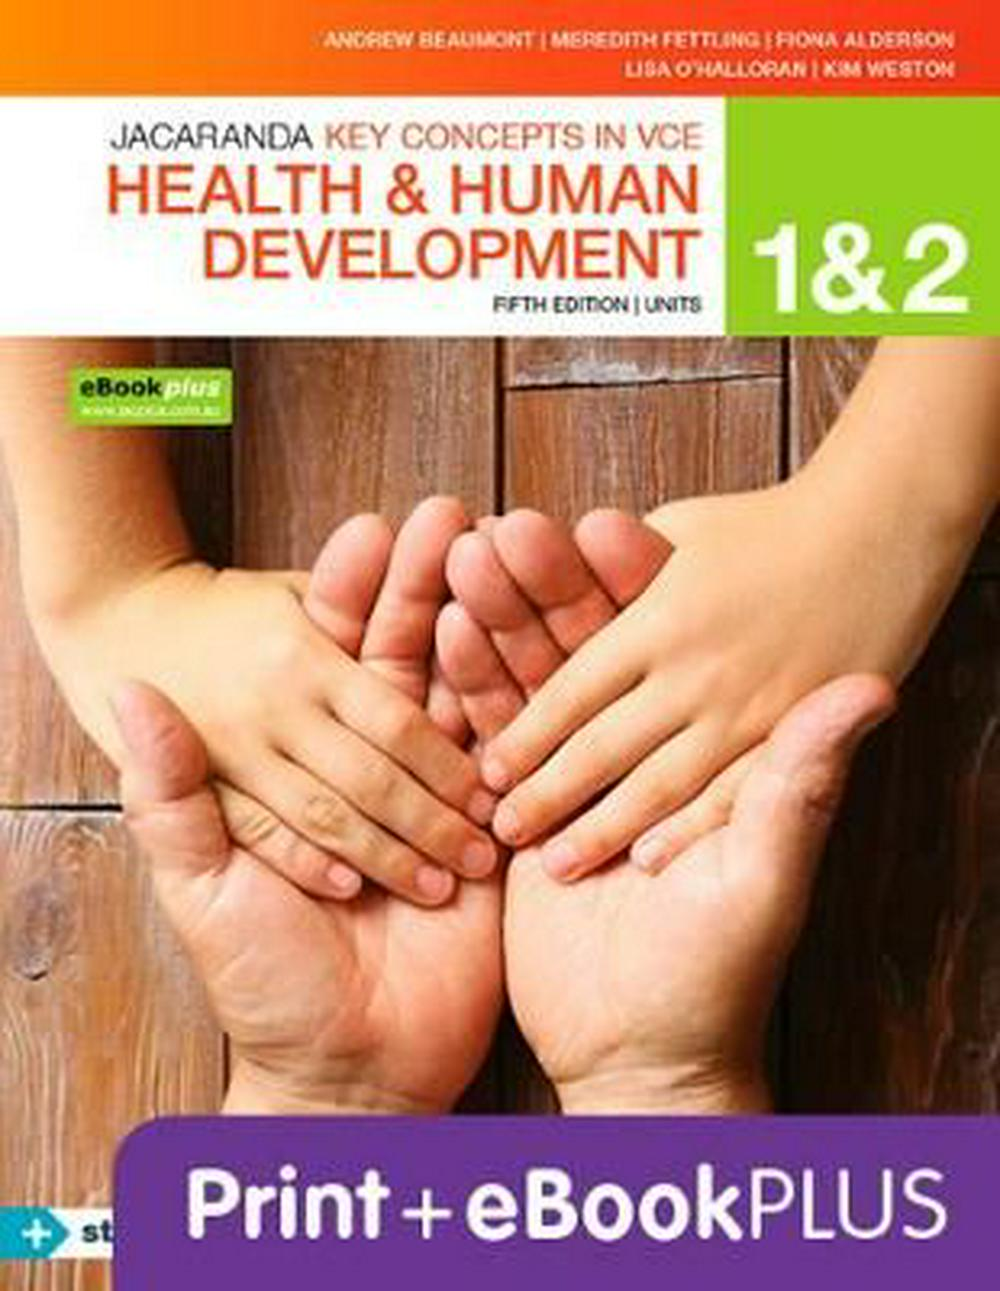 Key Concepts VCE Health and Human Development Units 1 &2 5E Ebk & Print+s/On  by Andrew Beaumont,Fiona Alderson,Lisa O'Halloran,Kim Weston, ISBN: 9780730346845